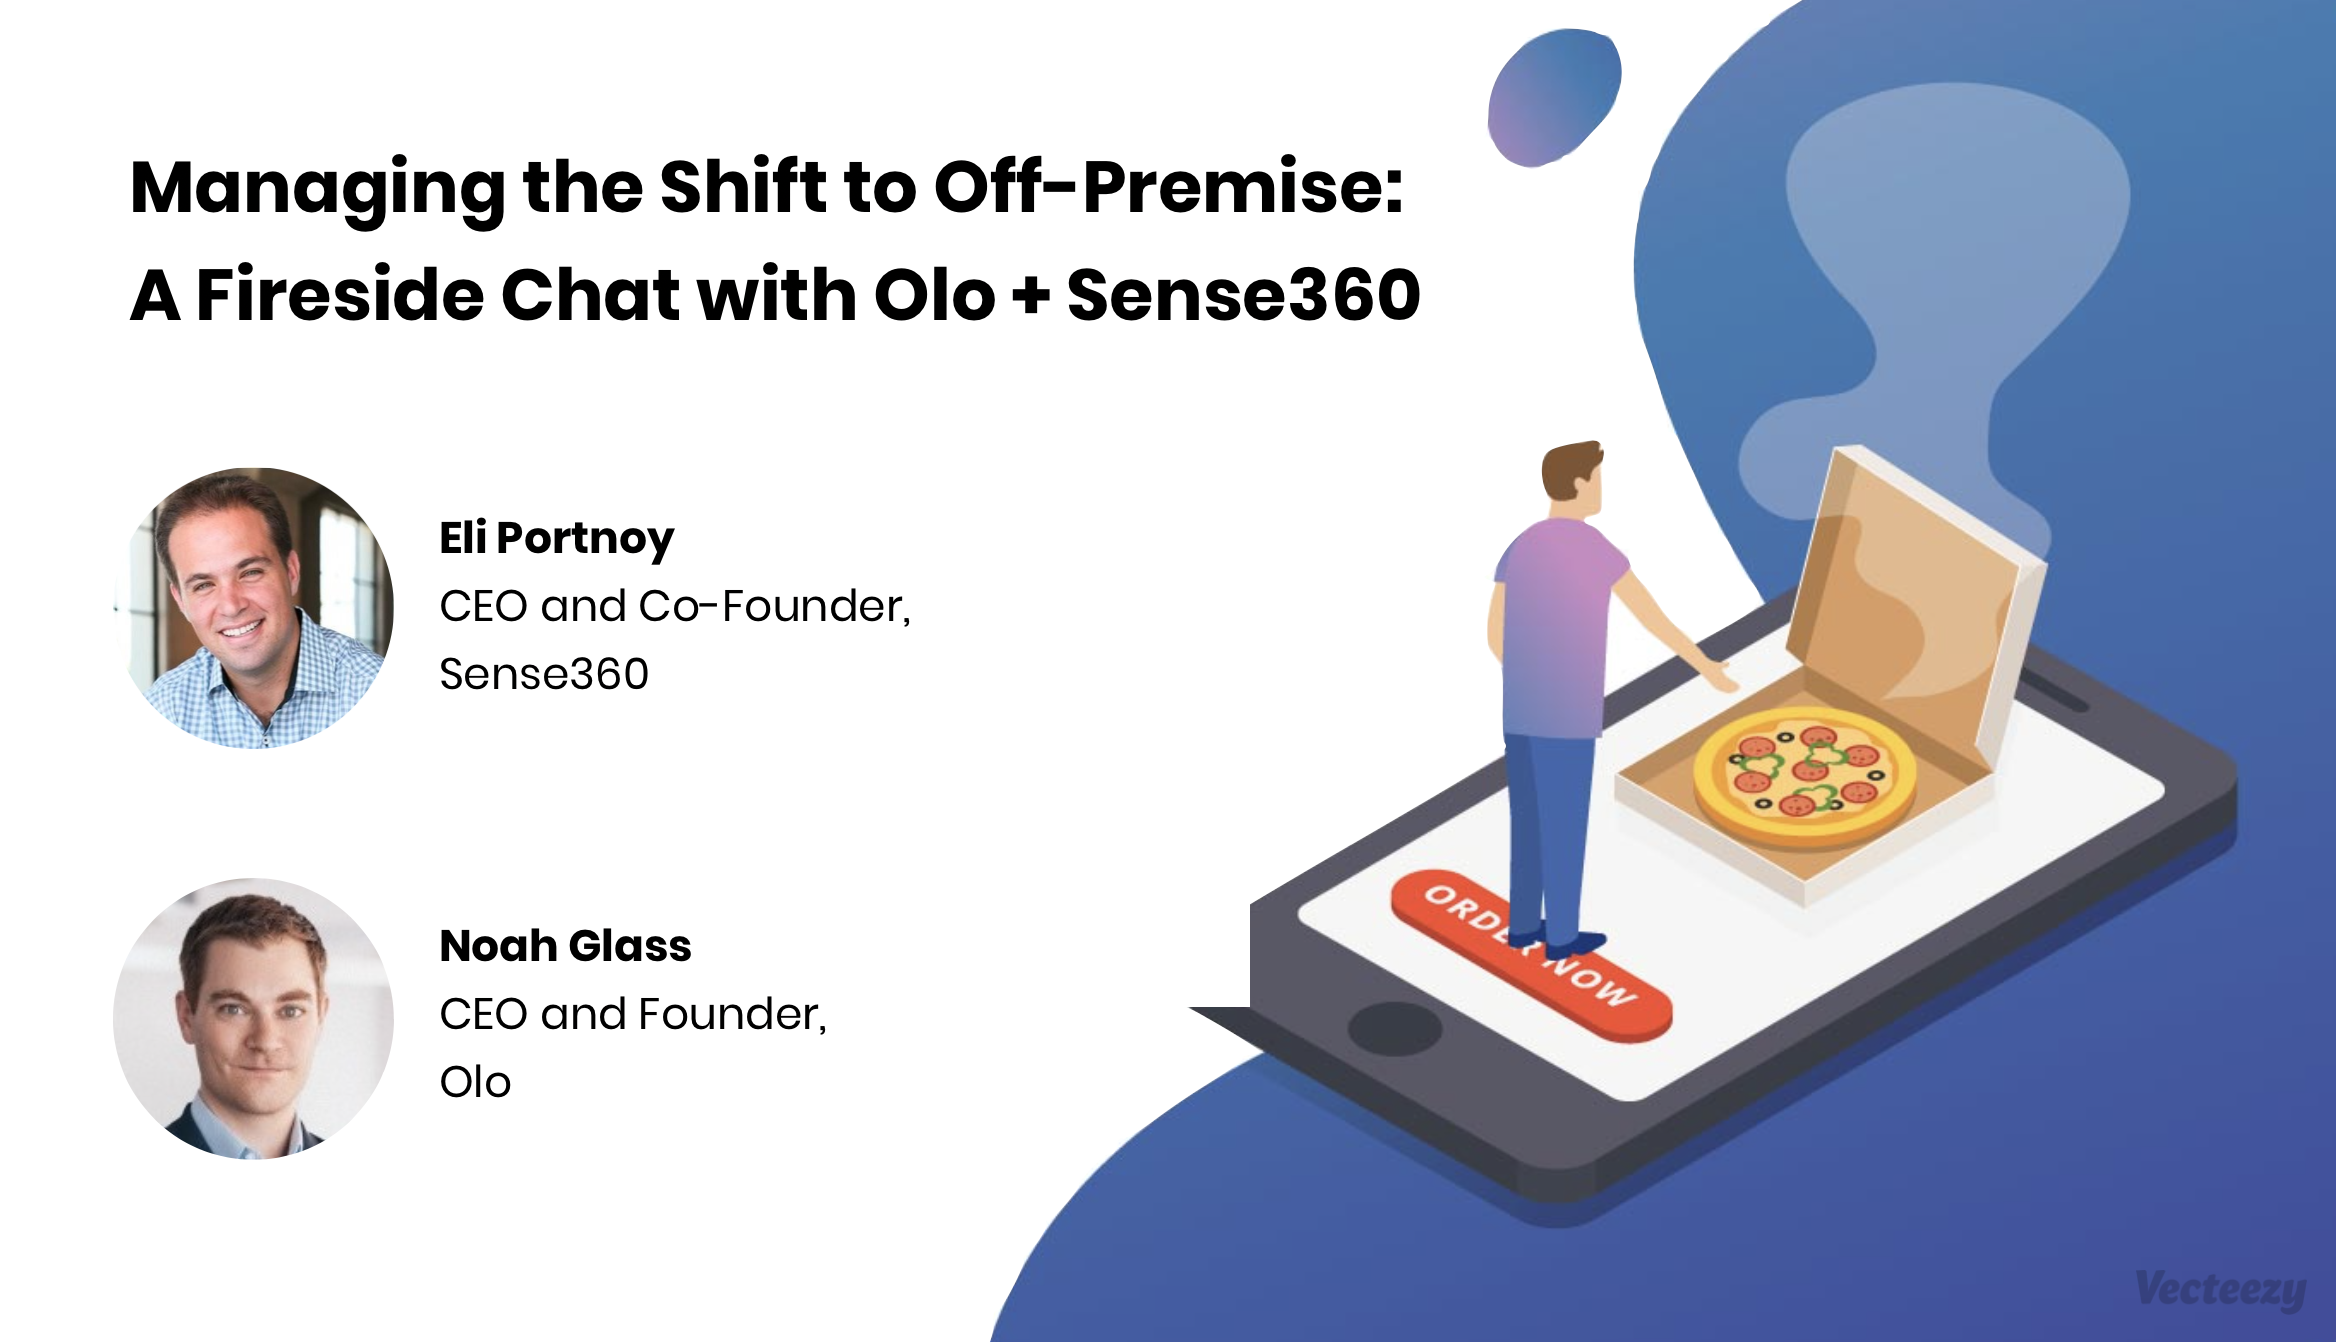 Managing the shift to off-premise: a fireside chat with Olo and Sense360